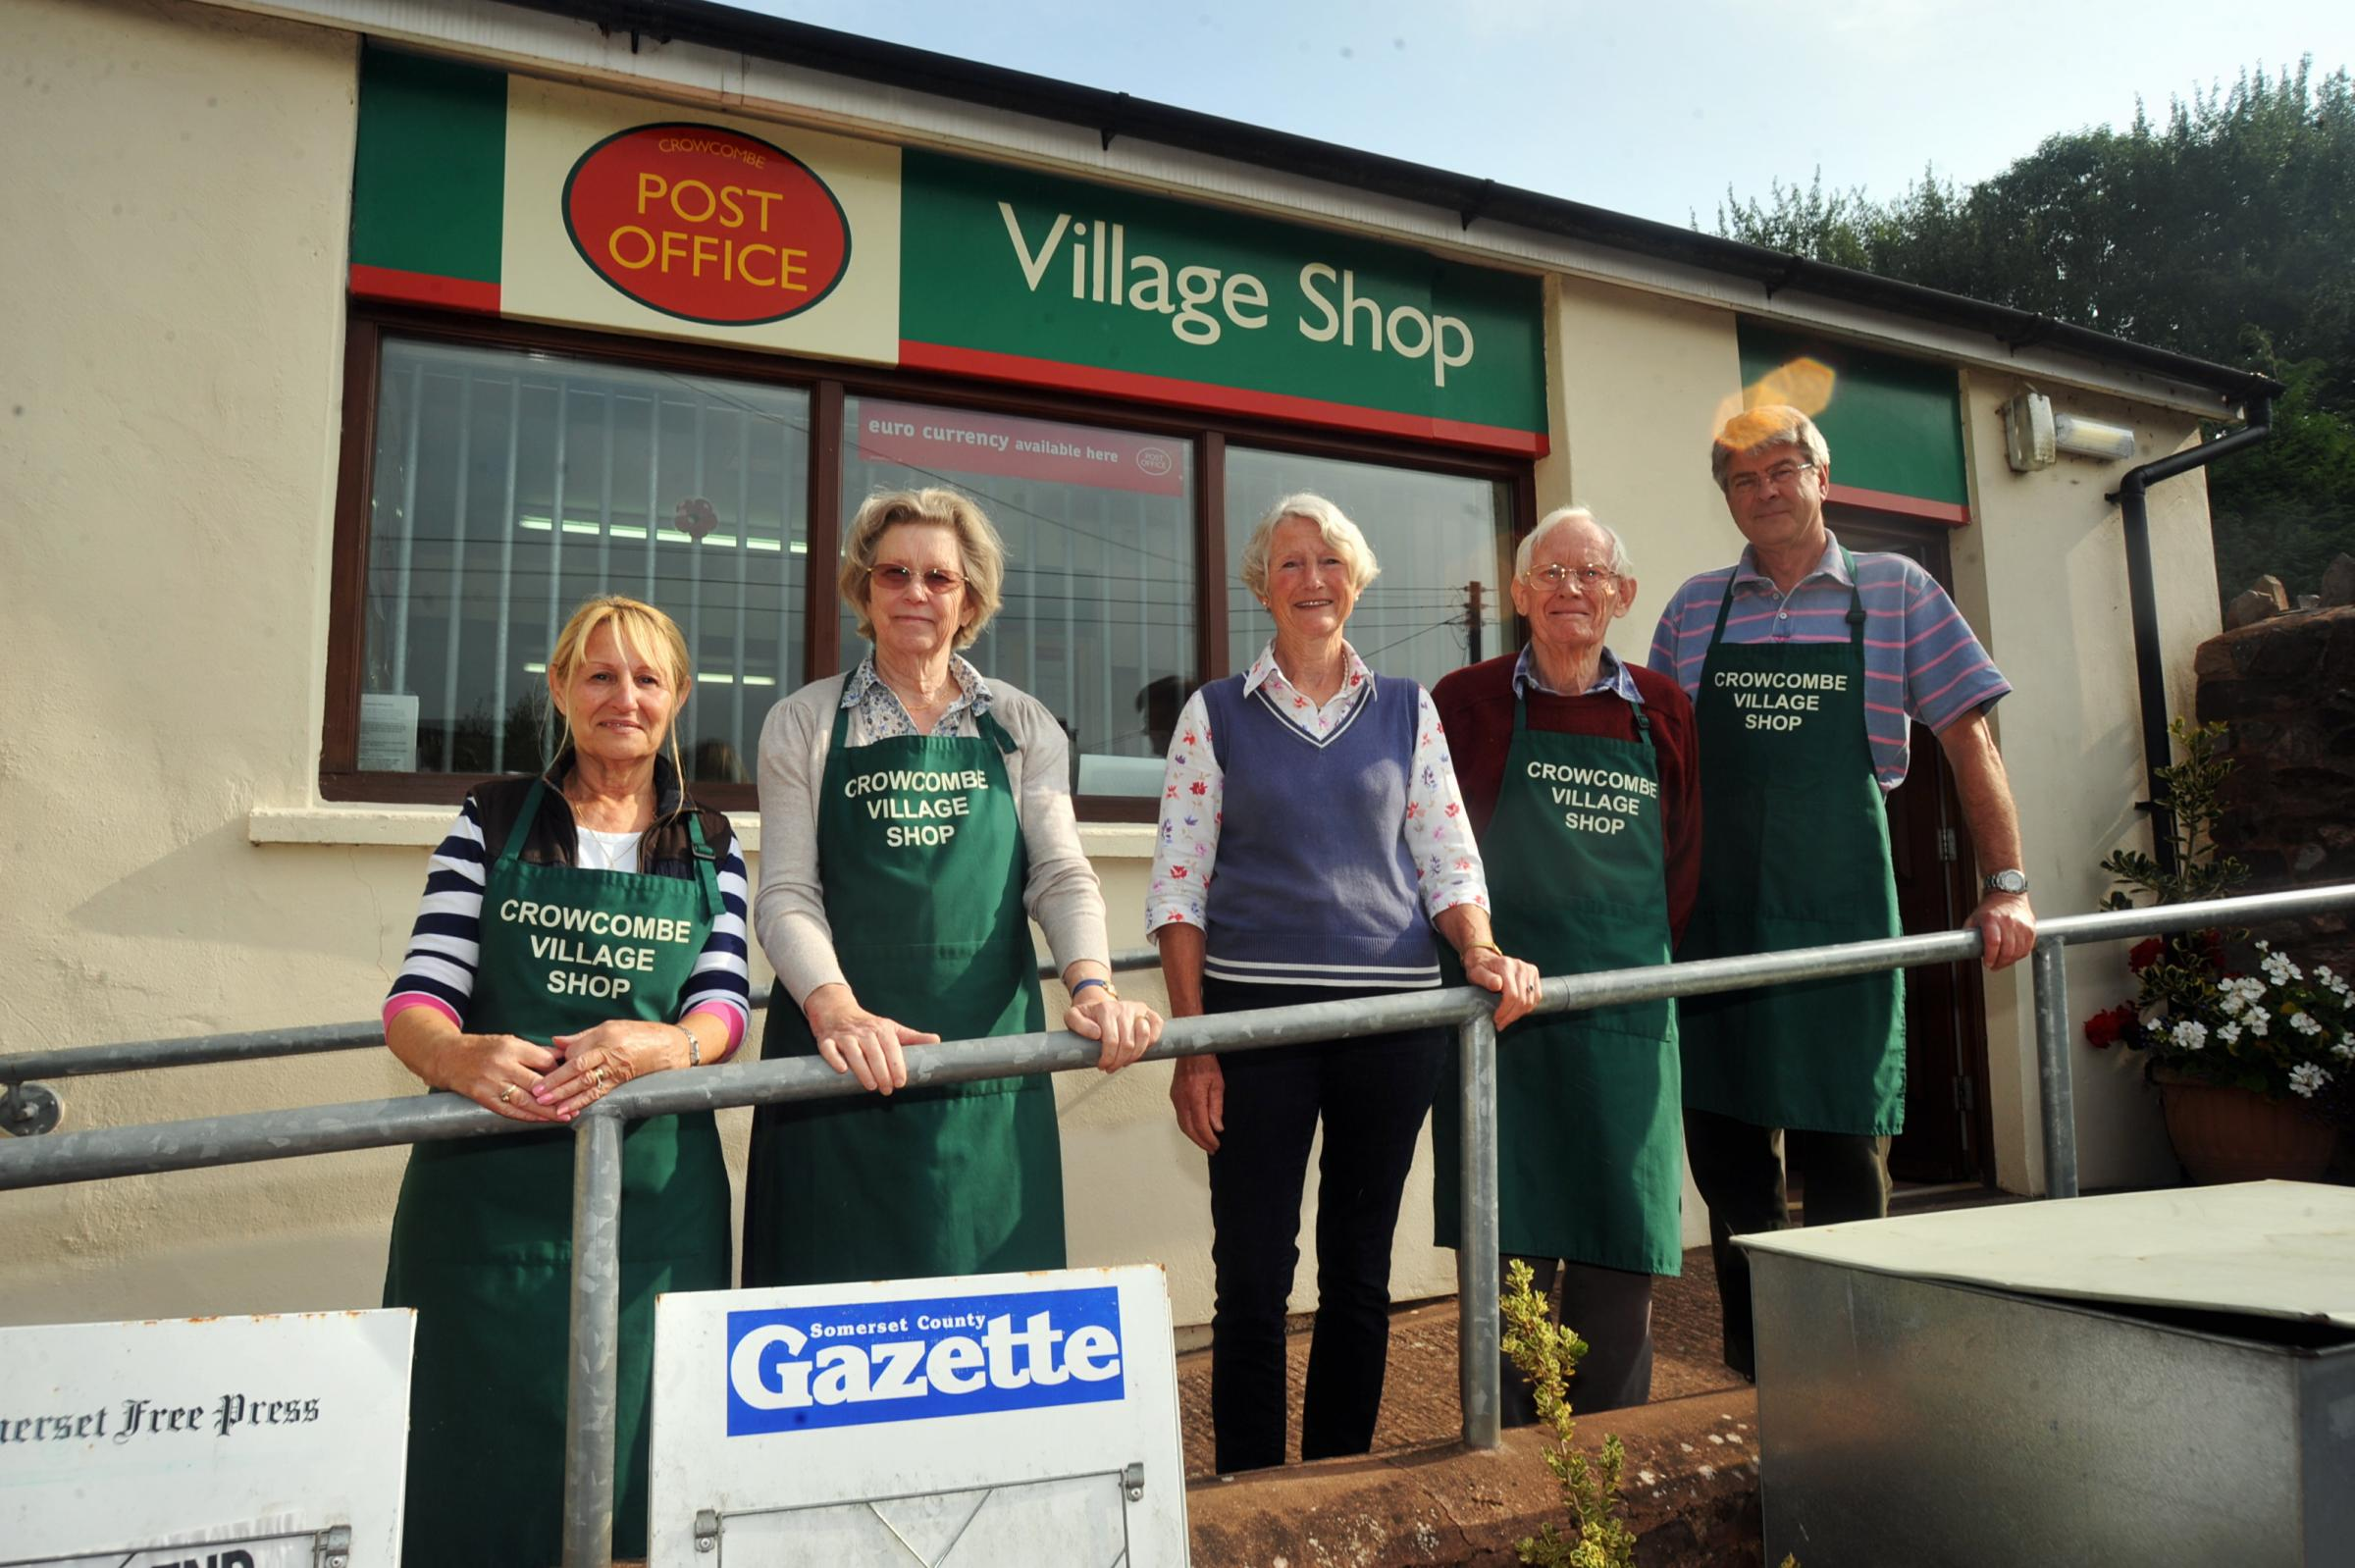 Crow be village shop thriving 12 years on